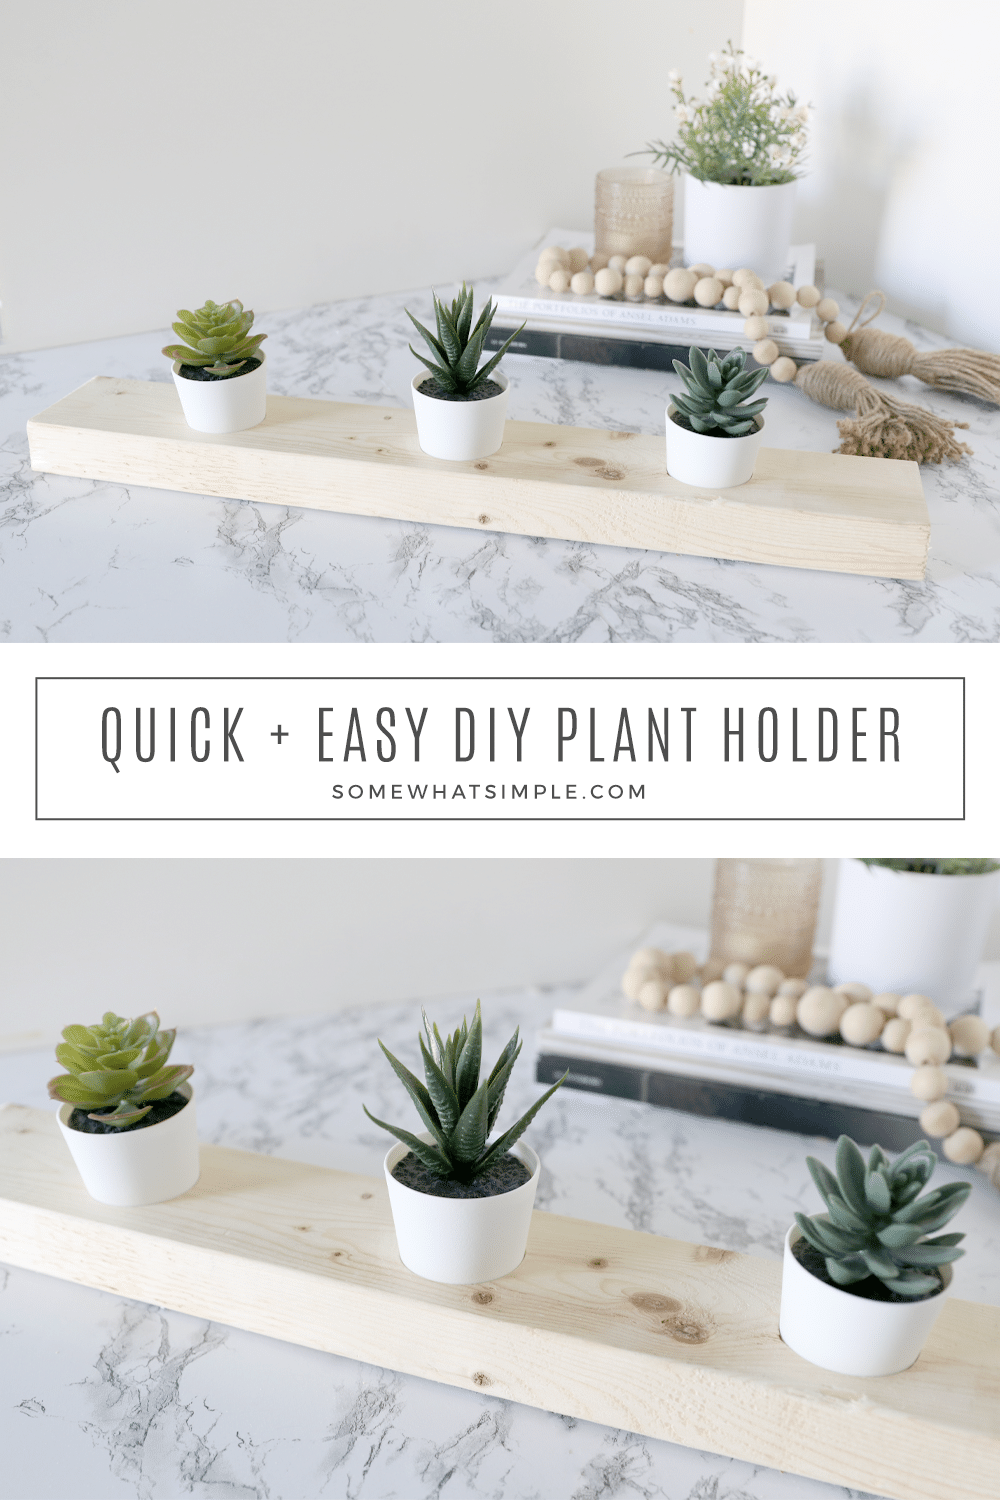 A DIY Succulent Planter that takes 5 minutes to make and costs less than $2! Simple, affordable, and fun! via @somewhatsimple